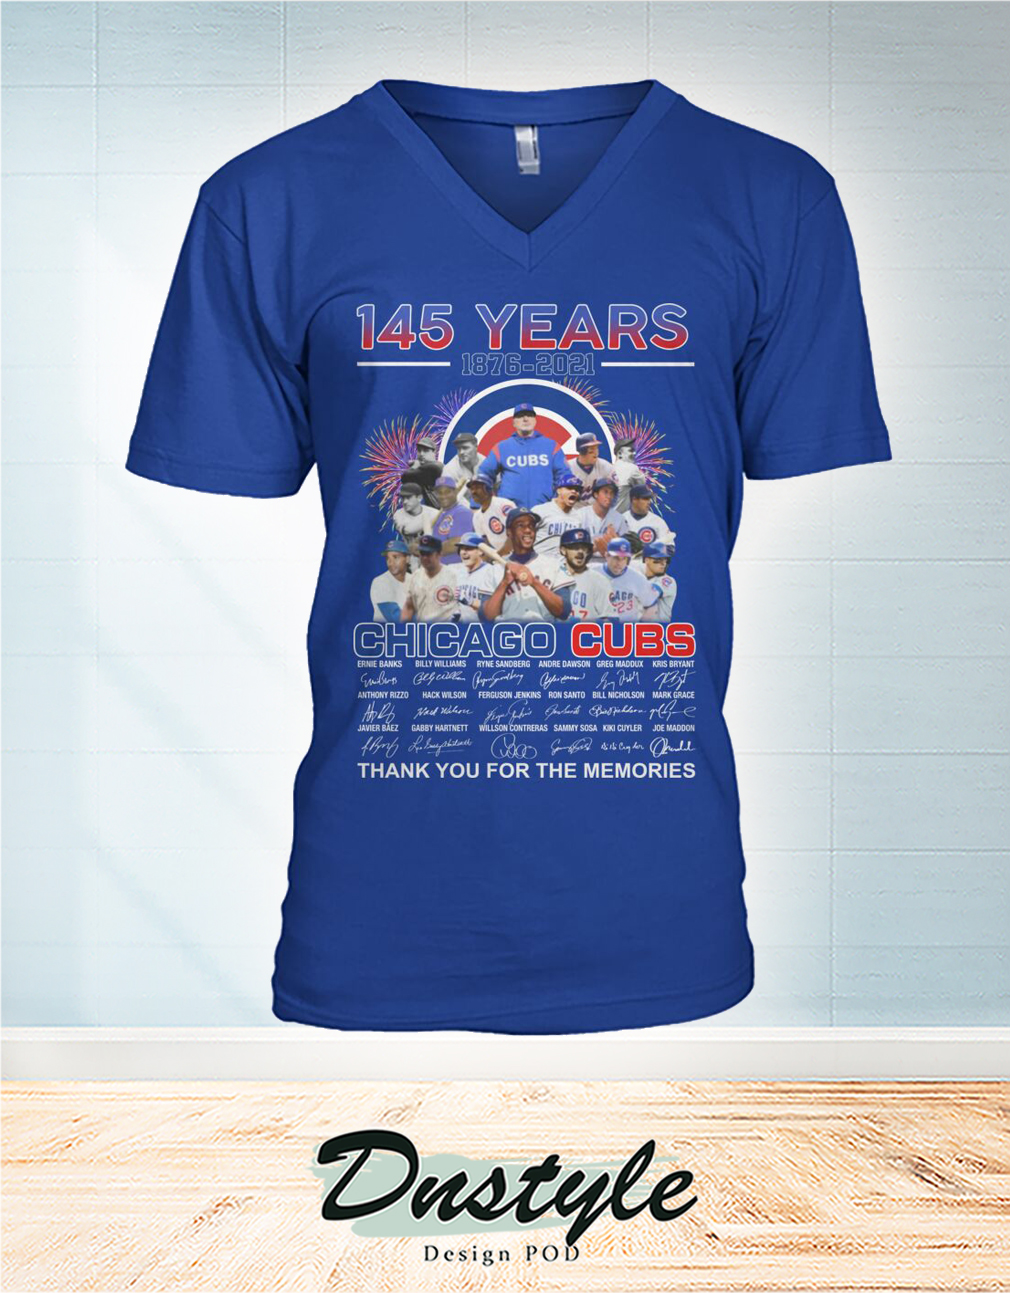 Chicago cubs 145 years signature thank you for the memories v-neck